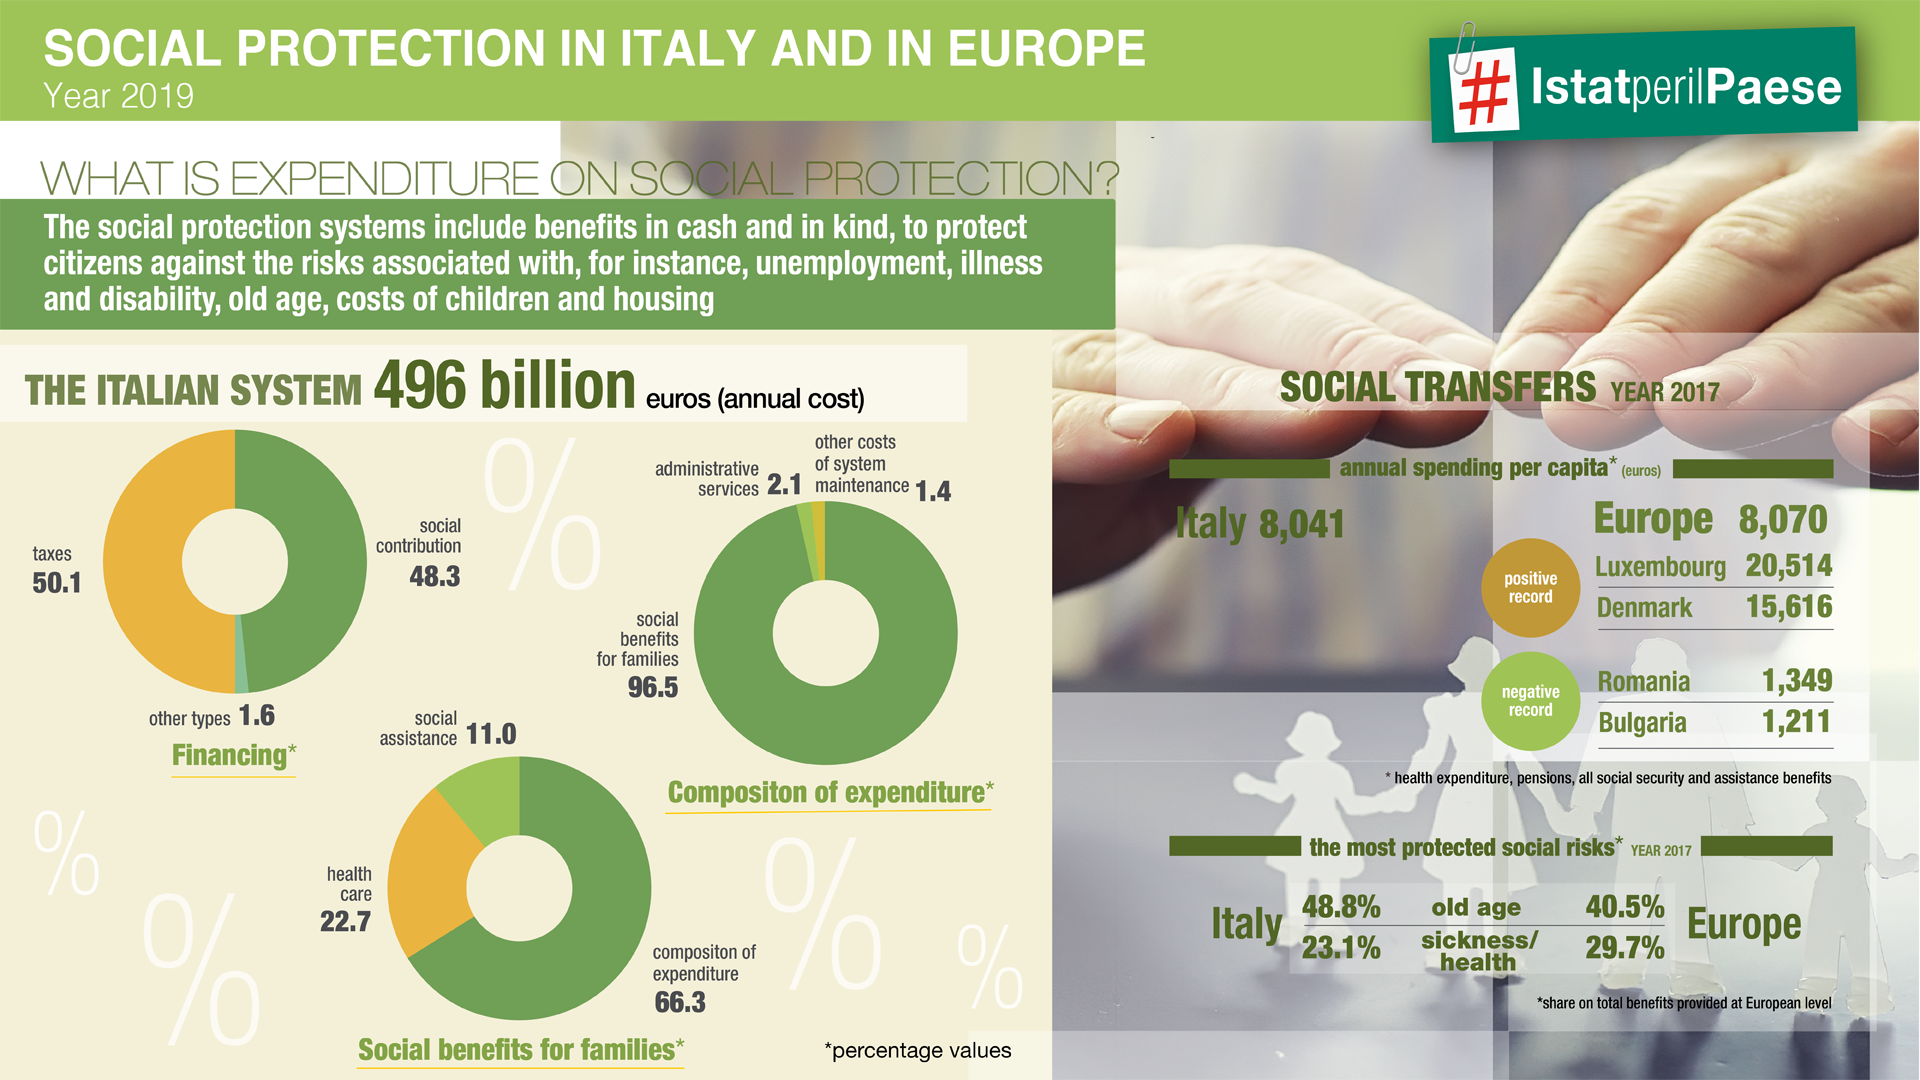 Social Protection in Italy and Europe-Infographic